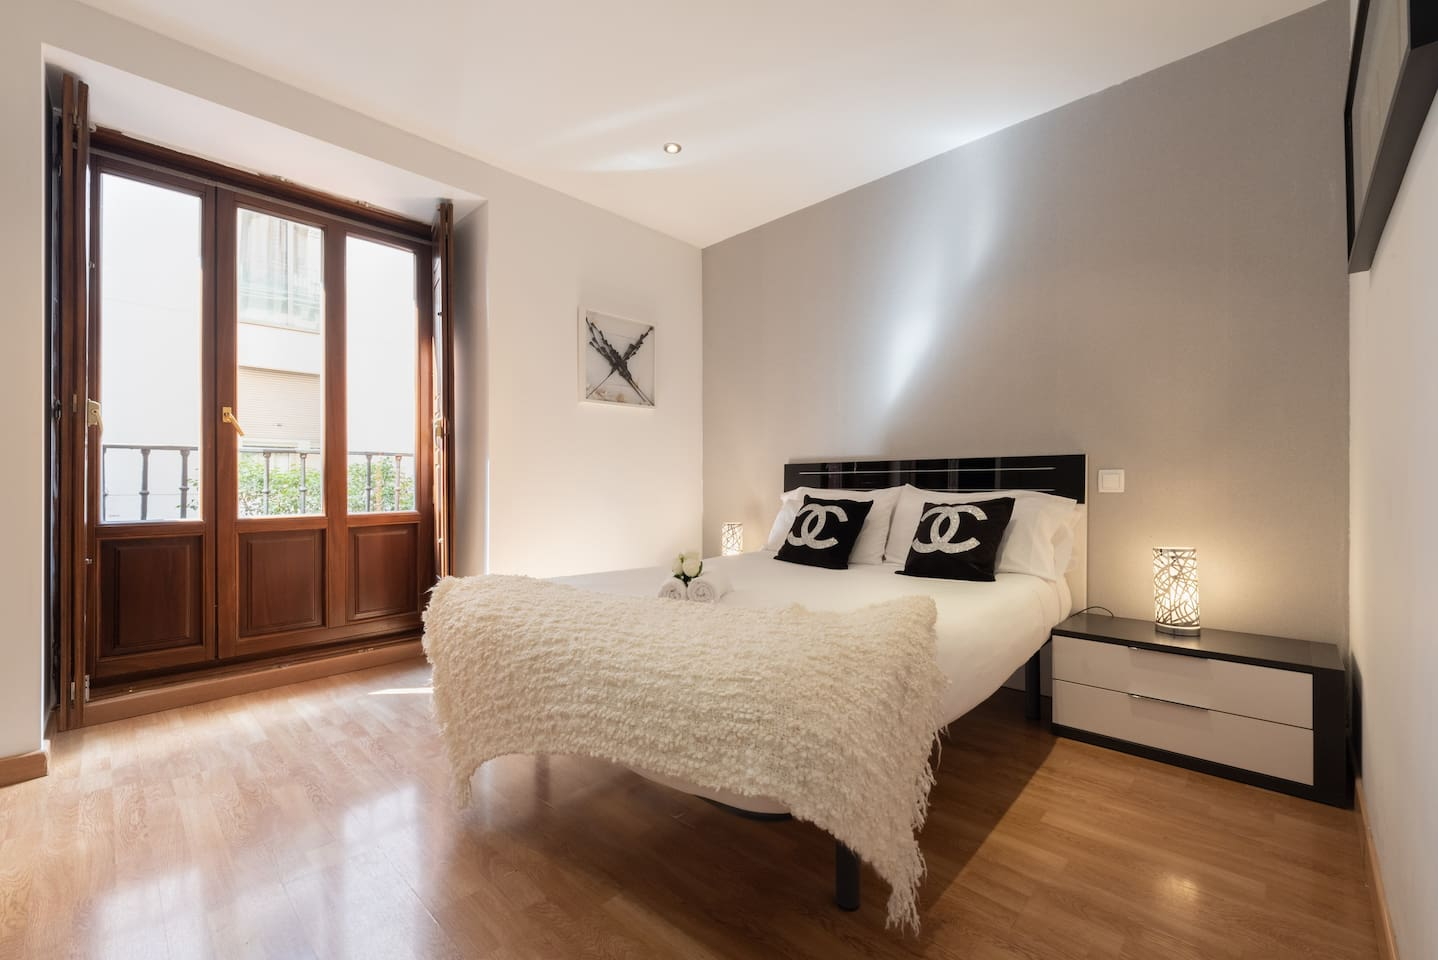 Habitacion con cama doble/Room with double bed